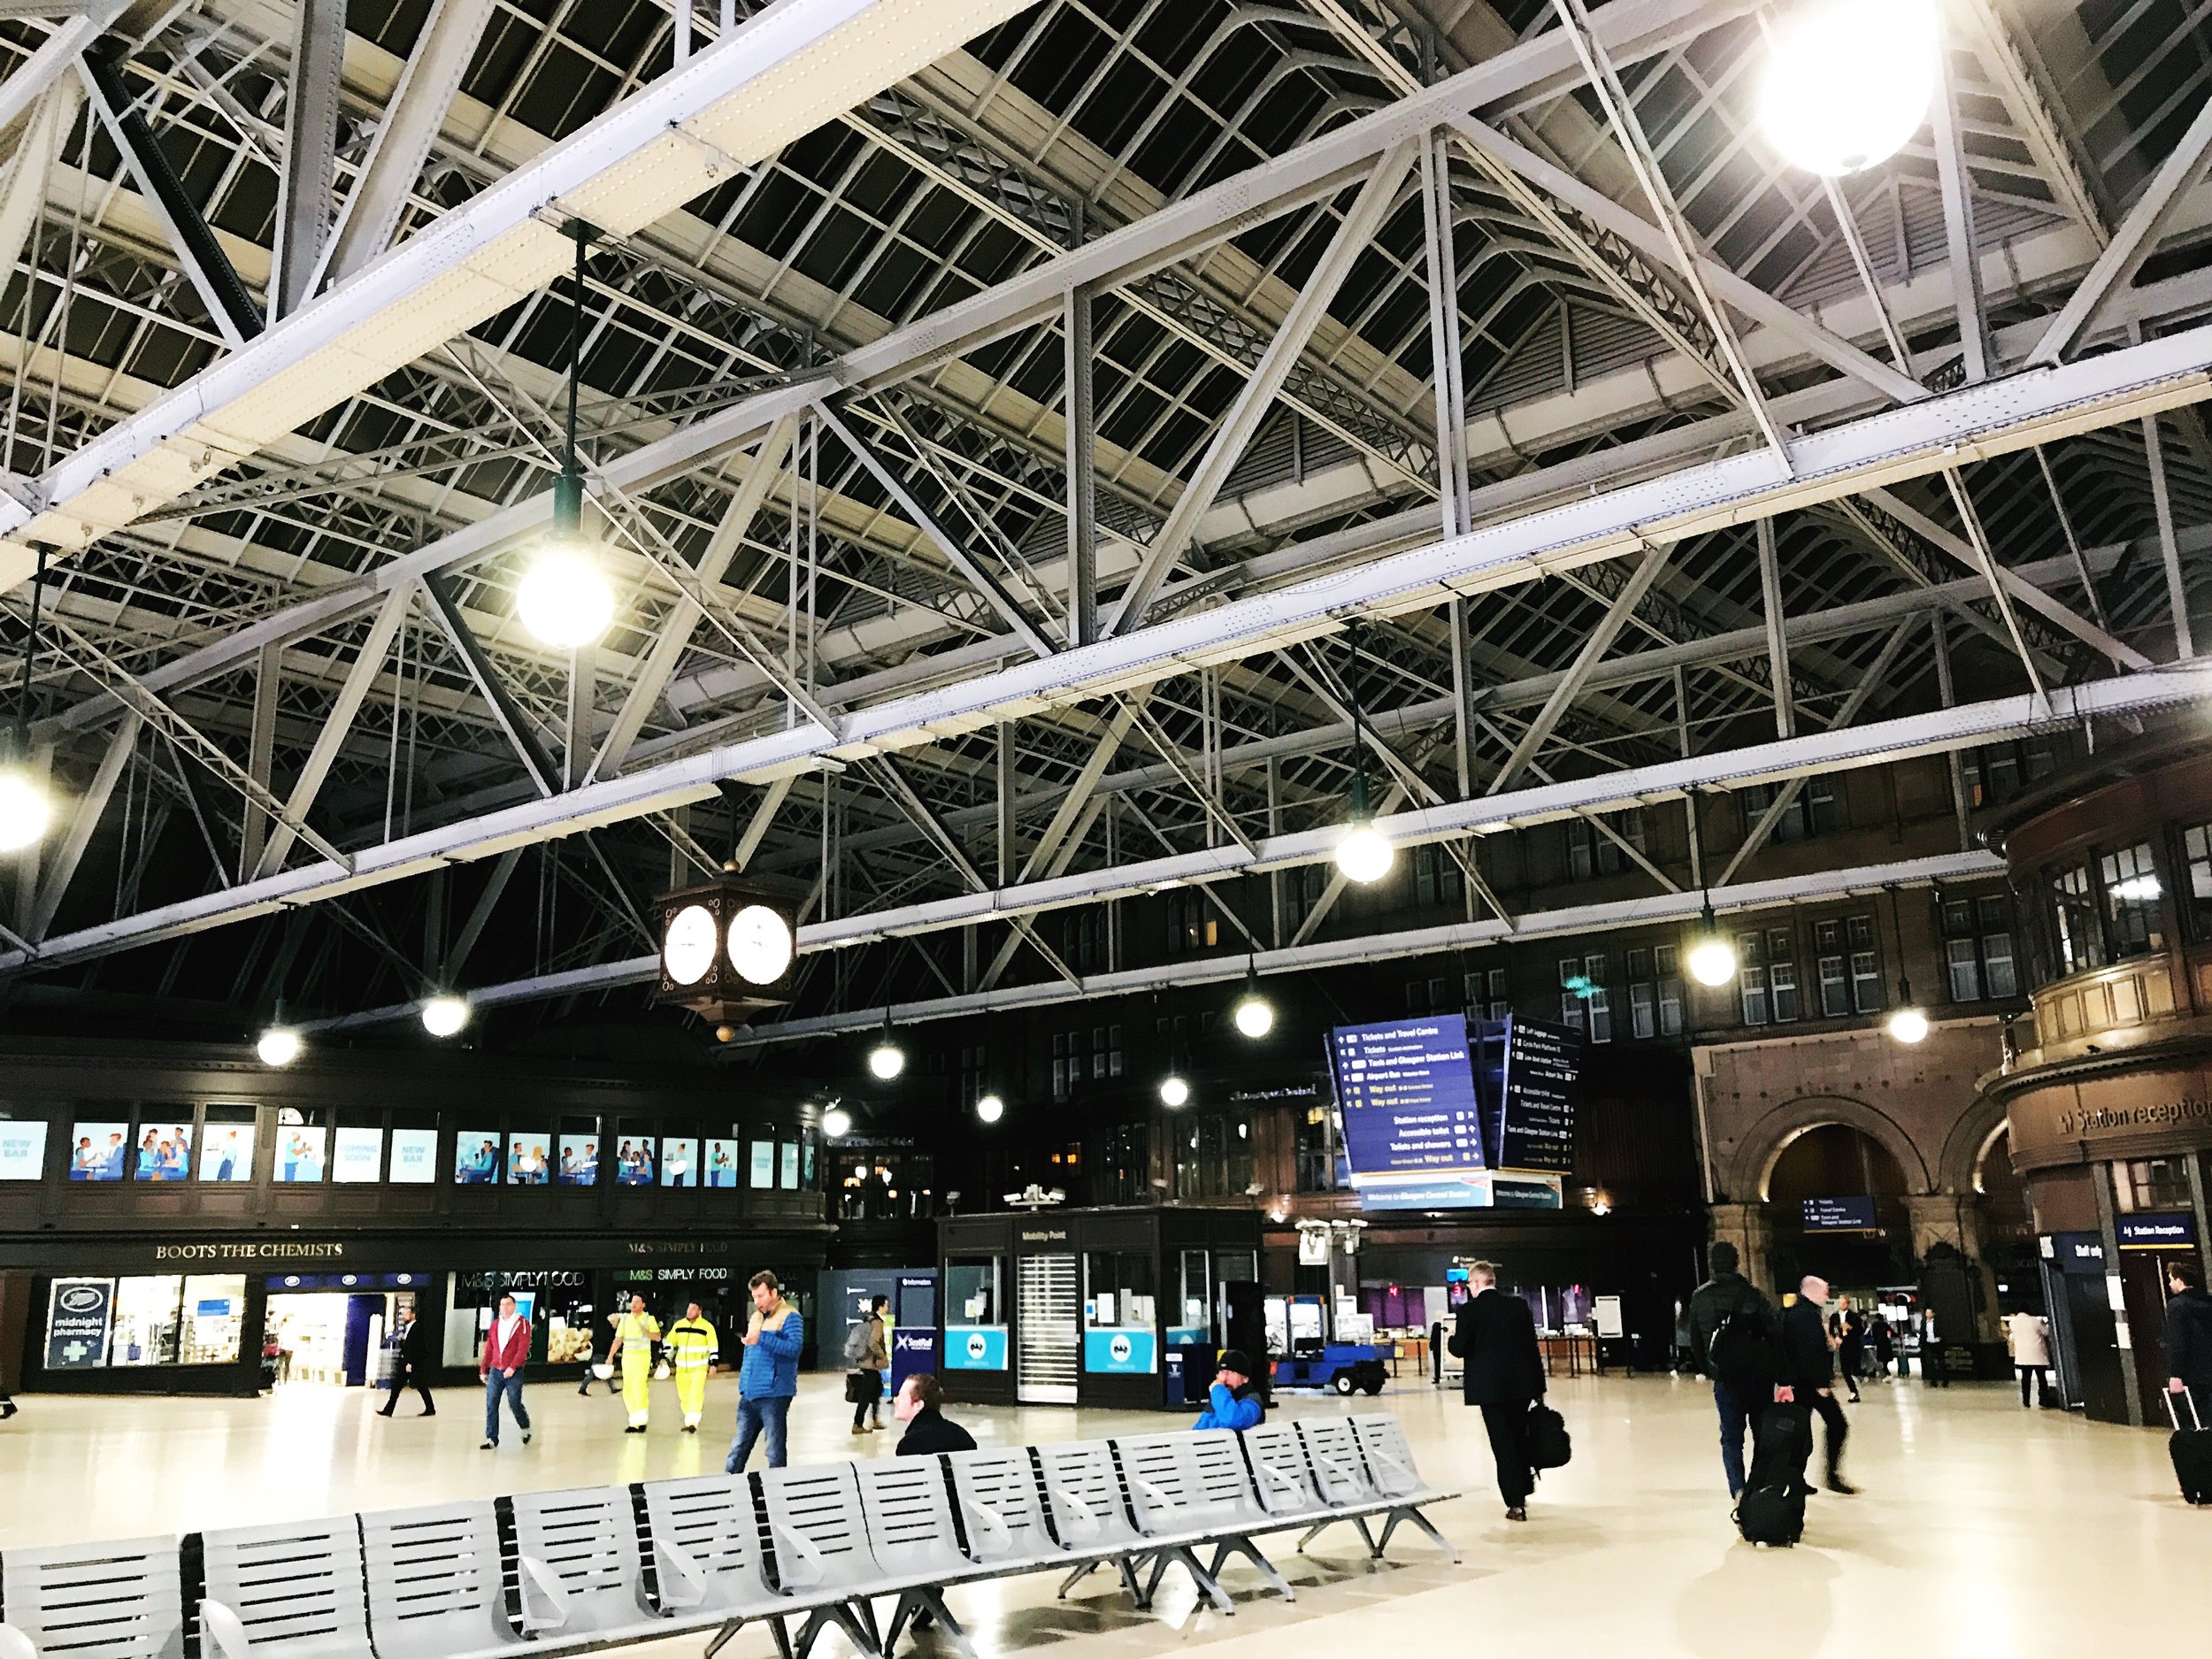 Glasgow Central Station, just before midnight